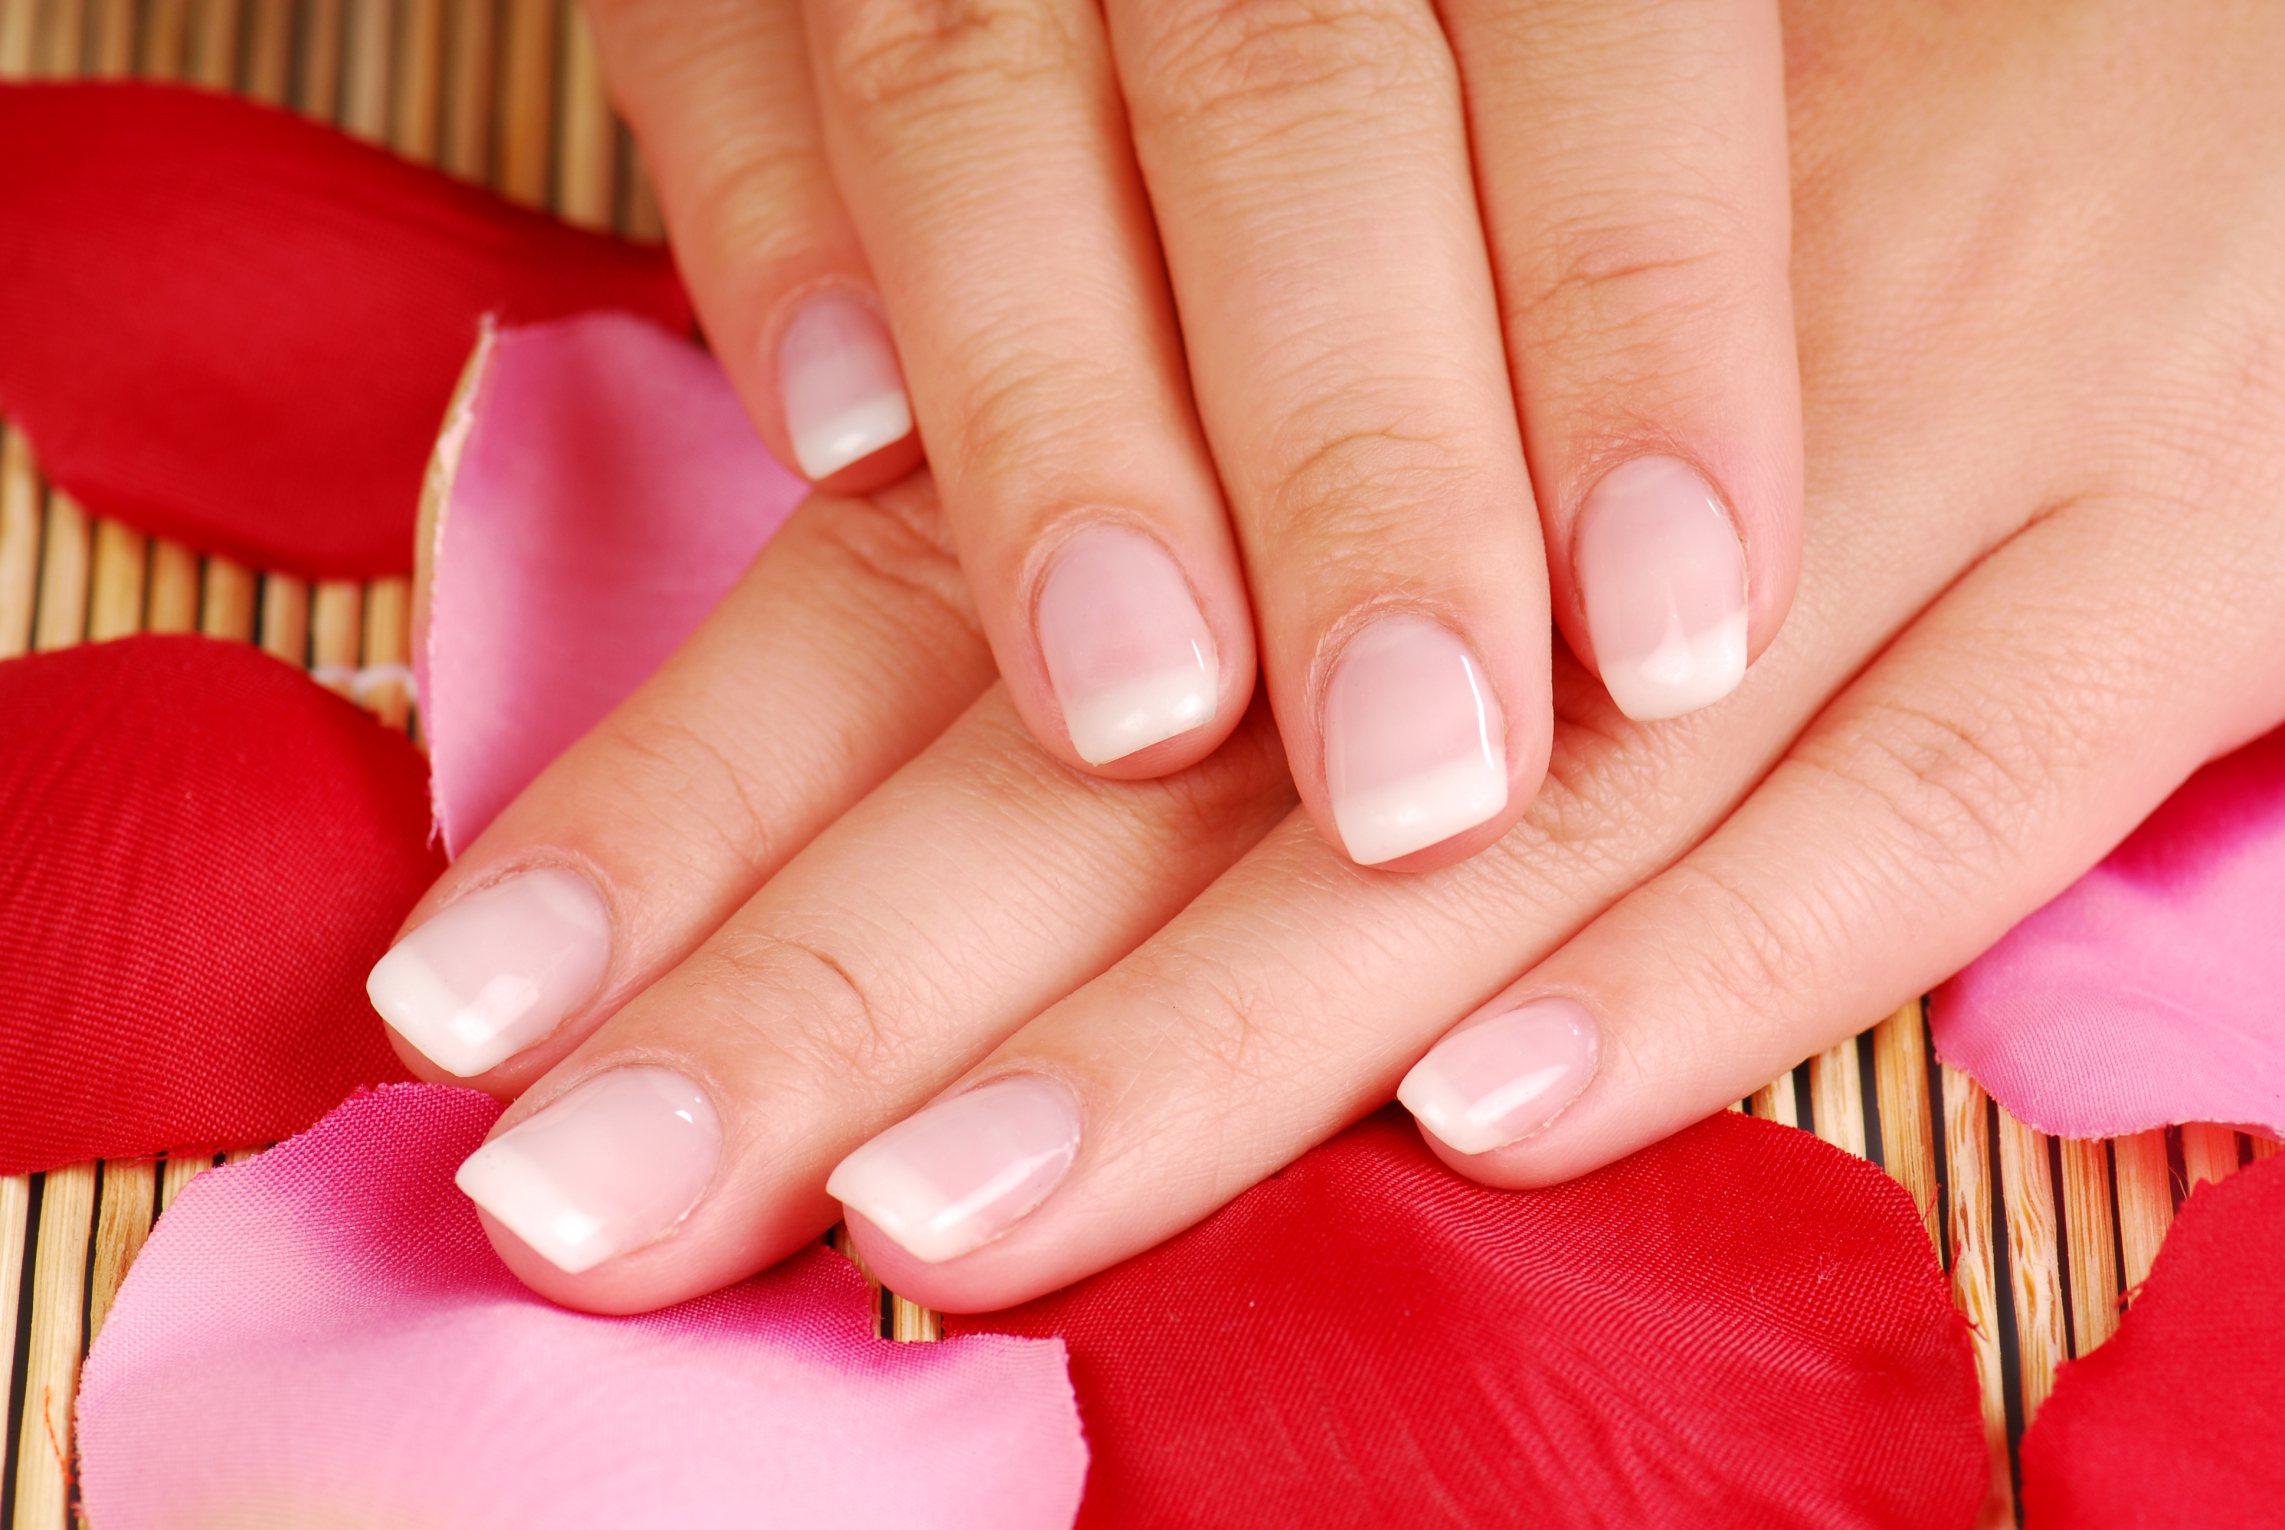 10 Thyroid Disorders Top 10 Things Your Nails Say About Your